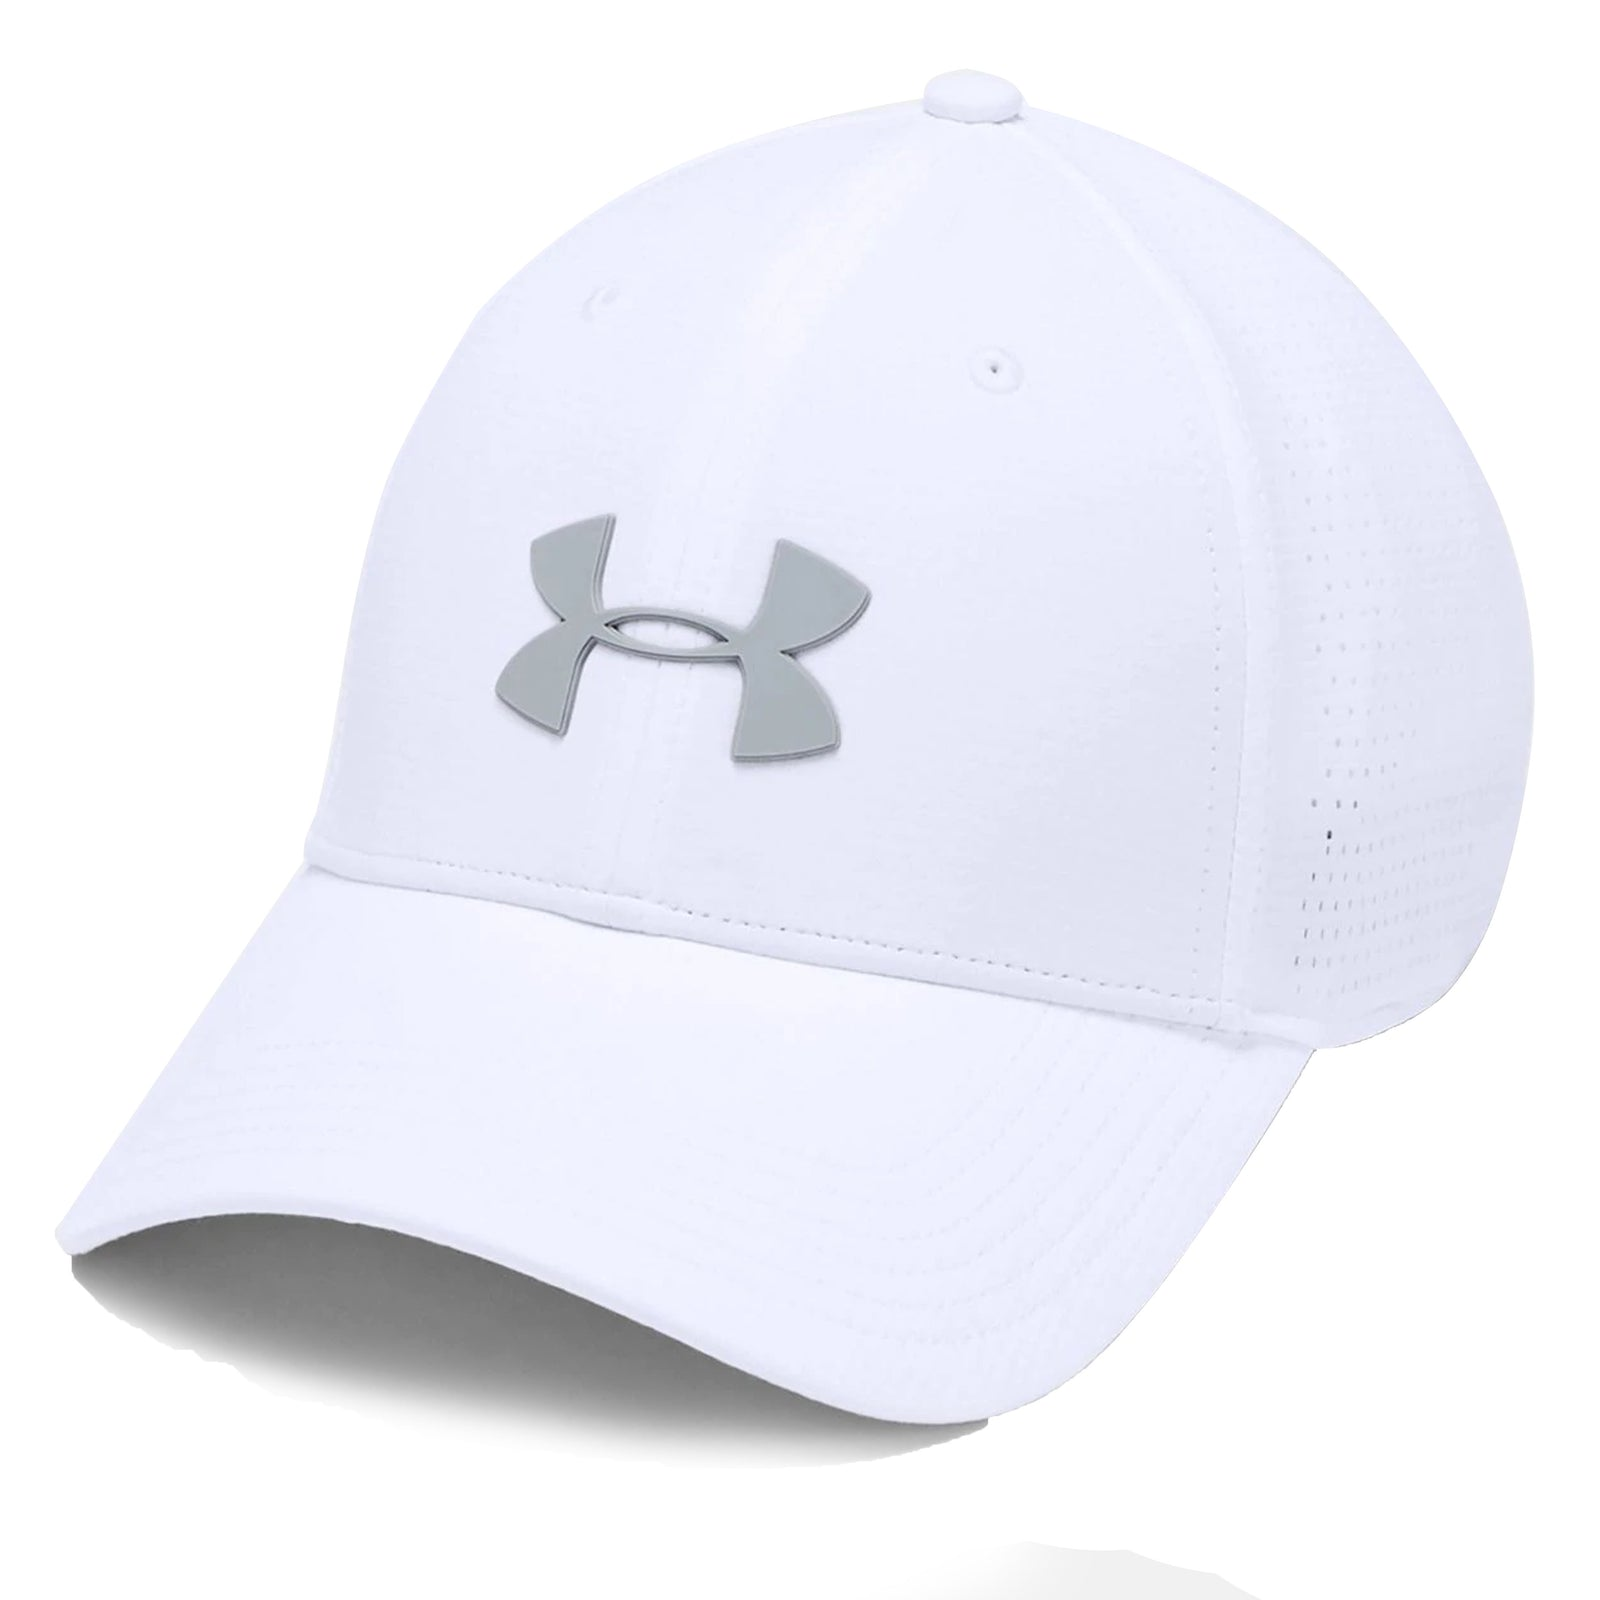 Under Armour Driver 3.0 Cap - White